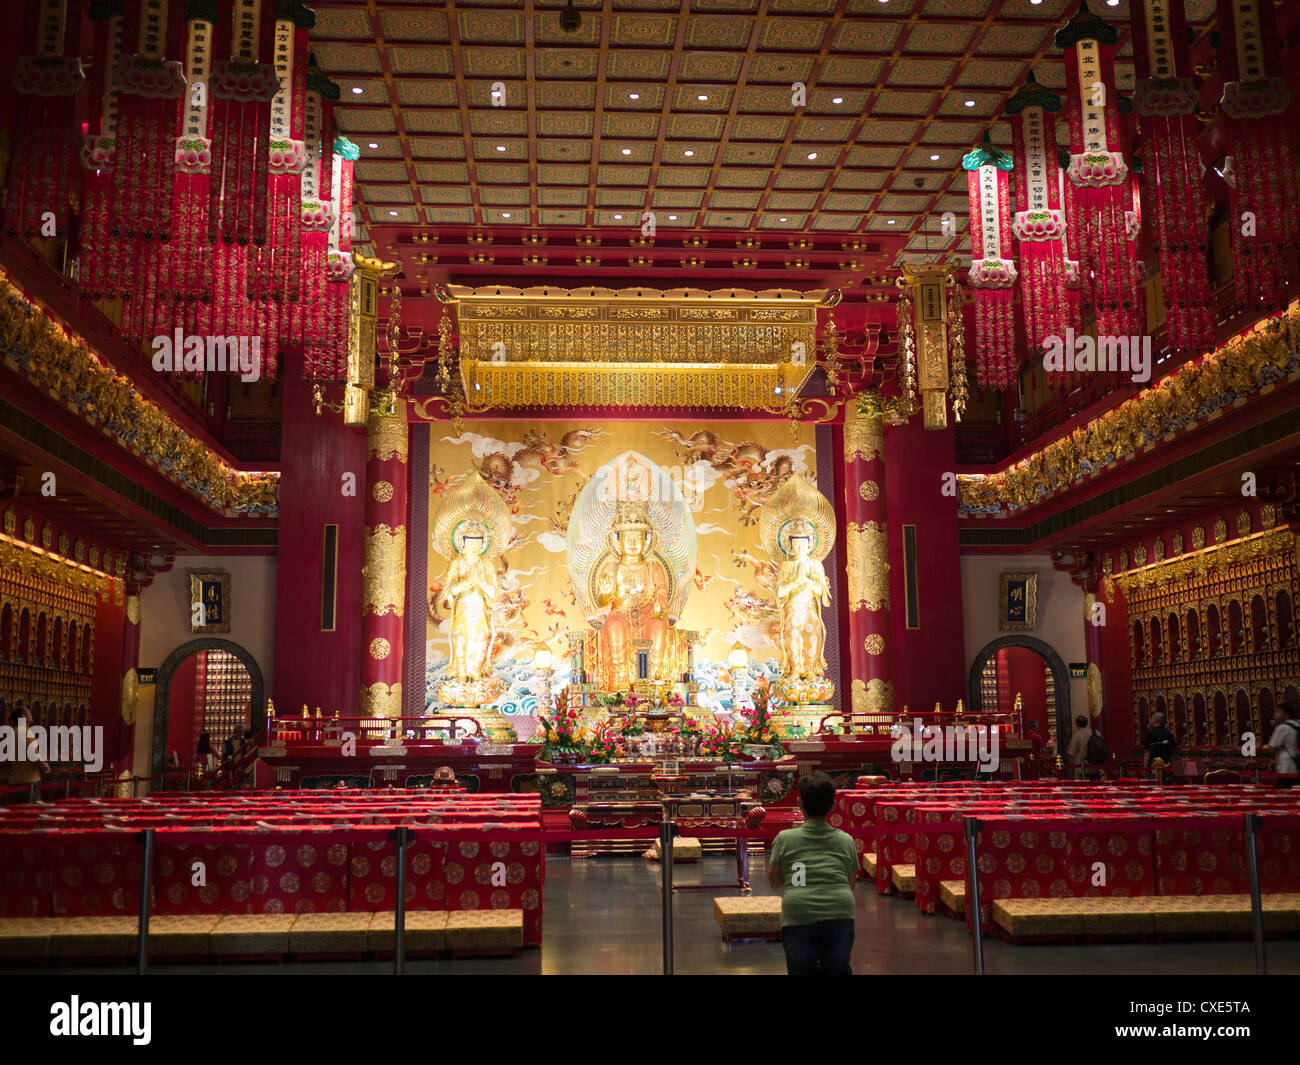 Interior of Buddha tooth relic Temple, Singapore, Asia - Stock Image